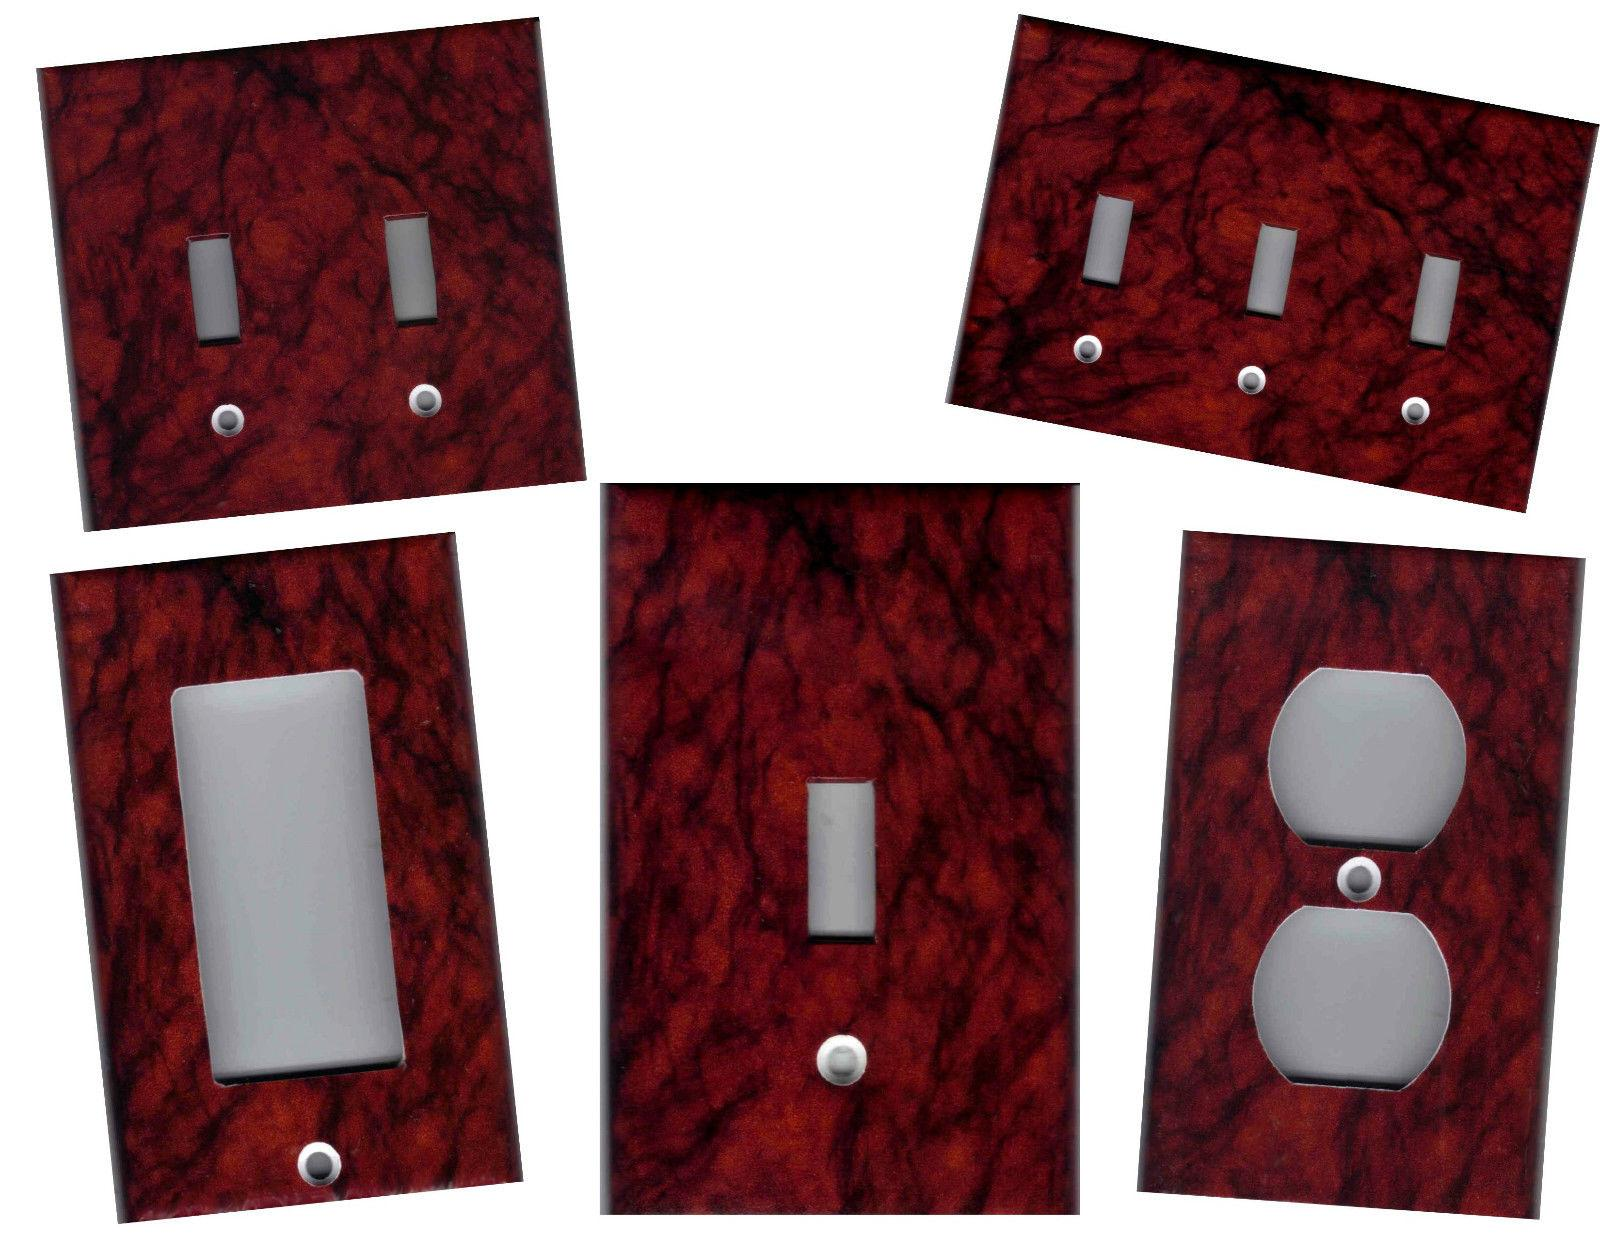 RED BURGUNDY BLACK MARBLE TILE IMAGE HOME DECOR LIGHT SWITCH